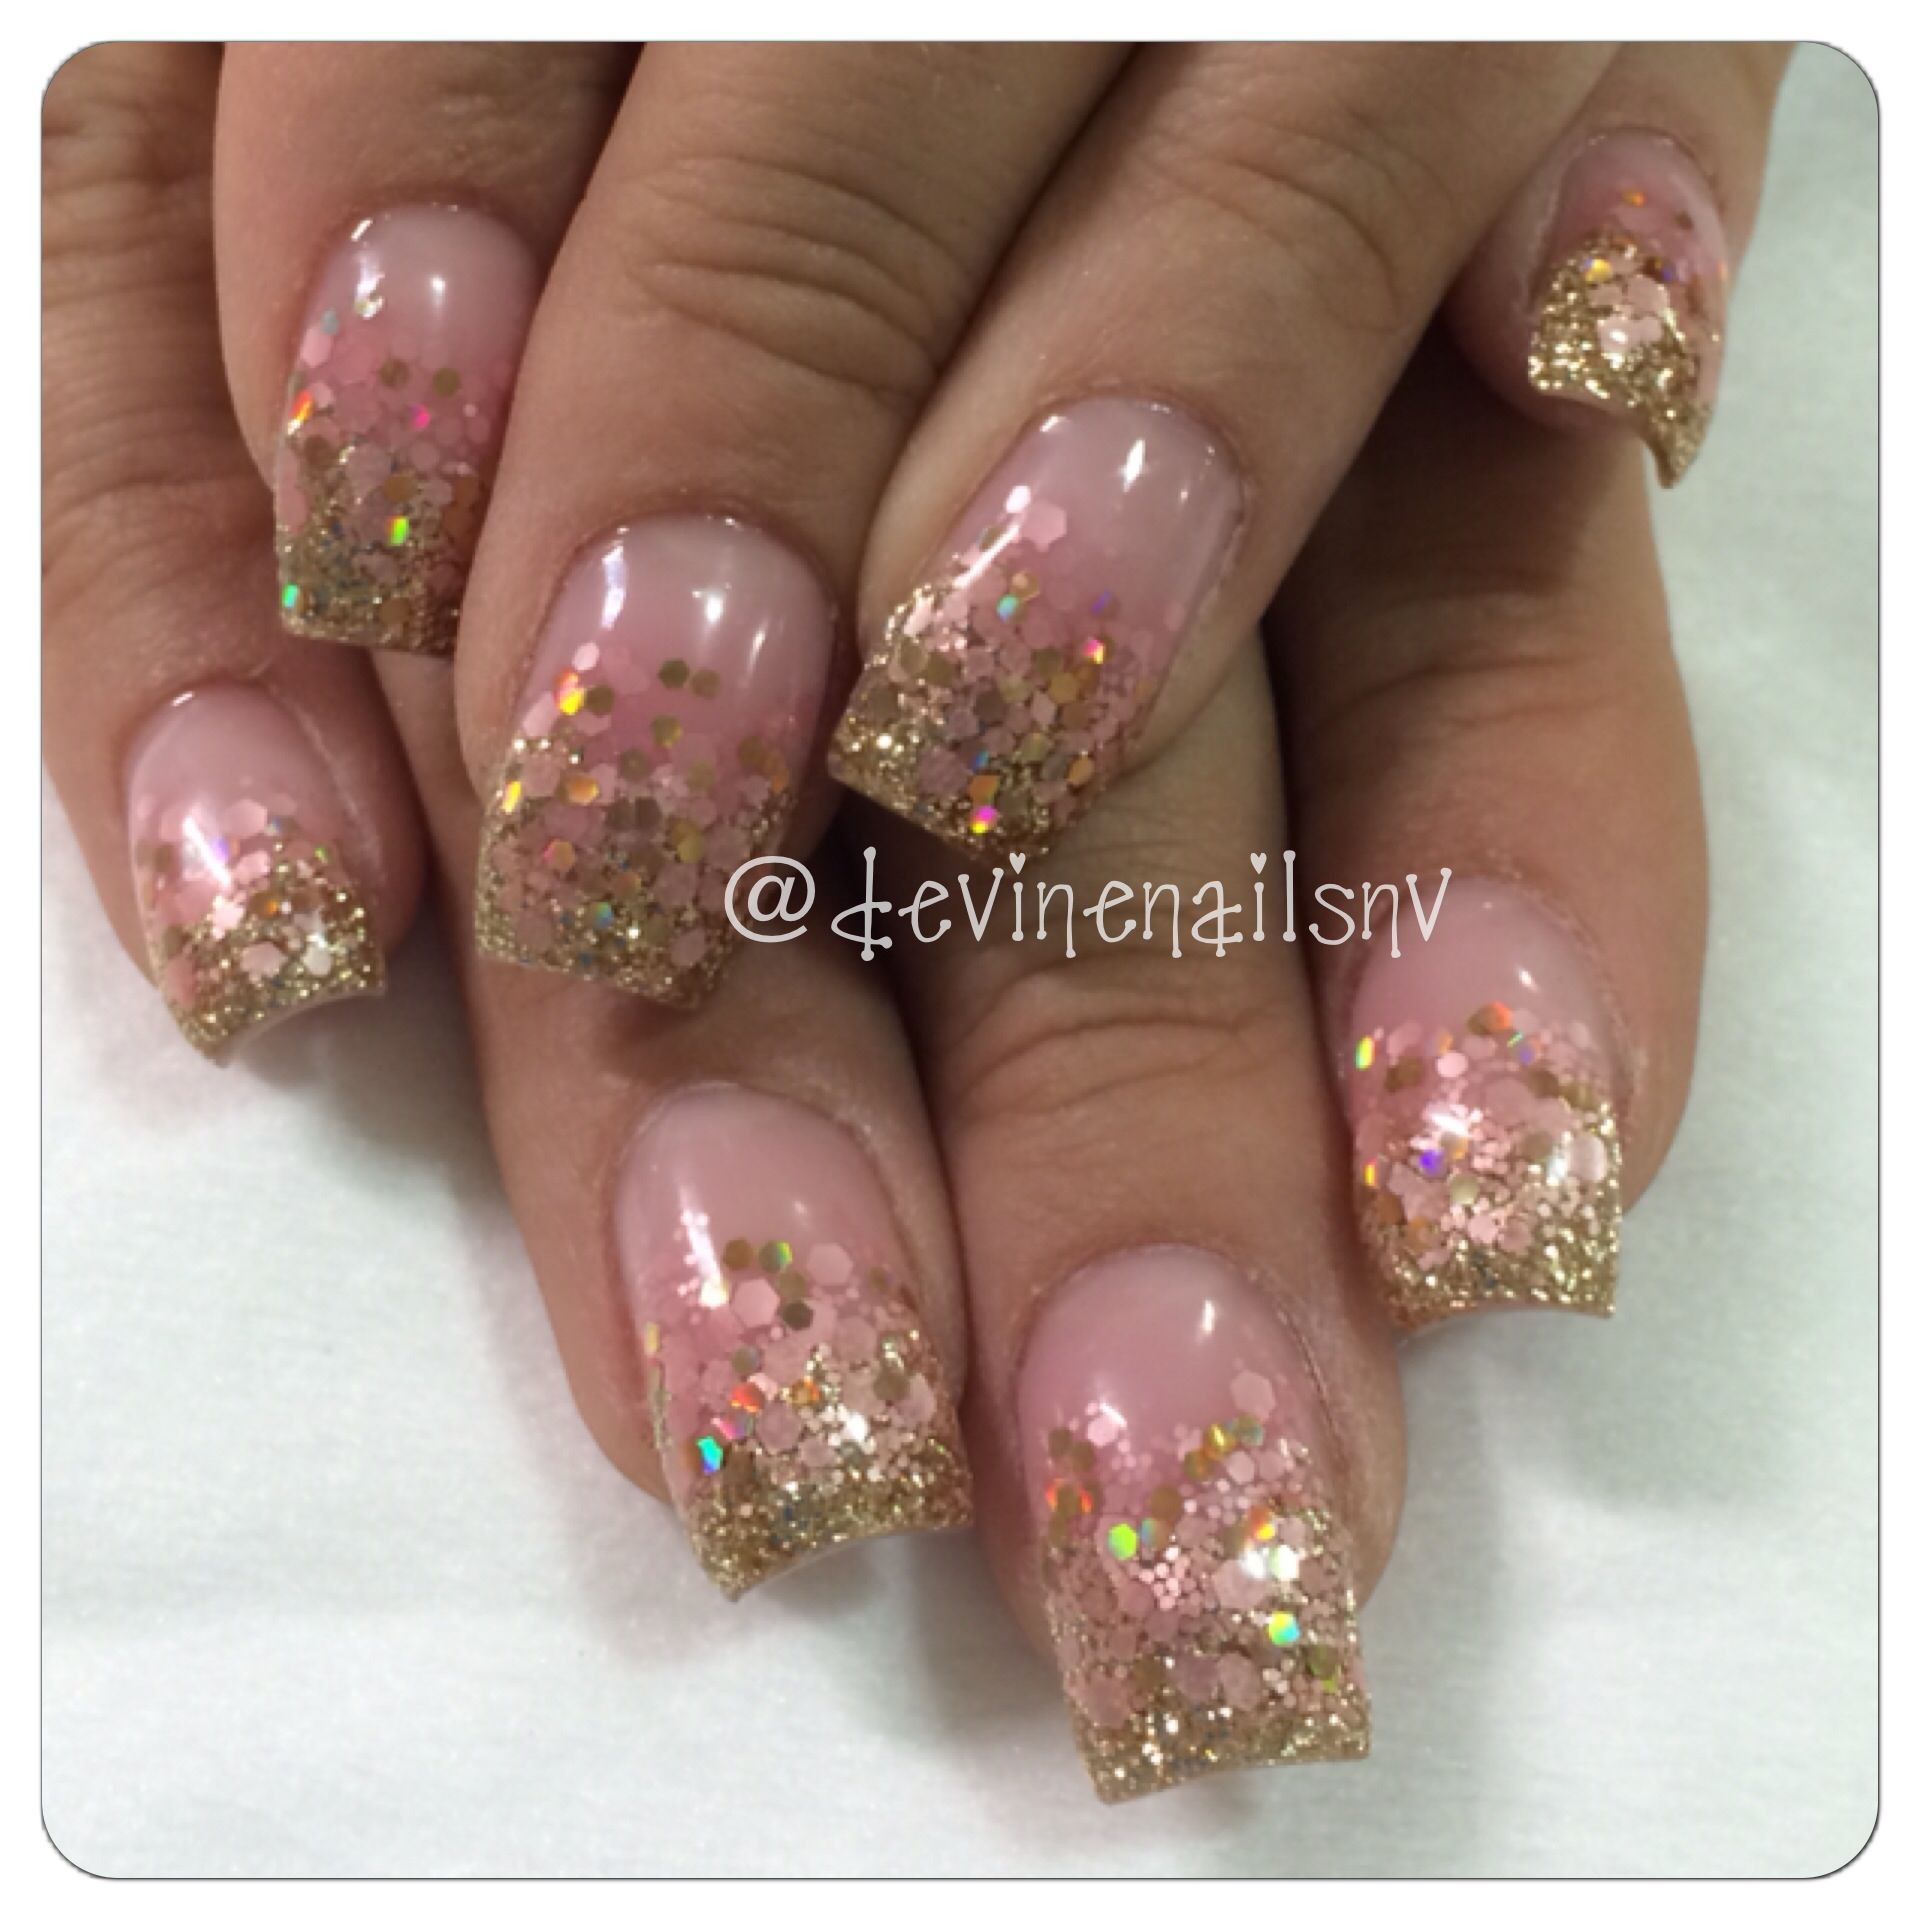 Pin by Chelsea Devine on Nails by Chelsea Devine | Pinterest ...